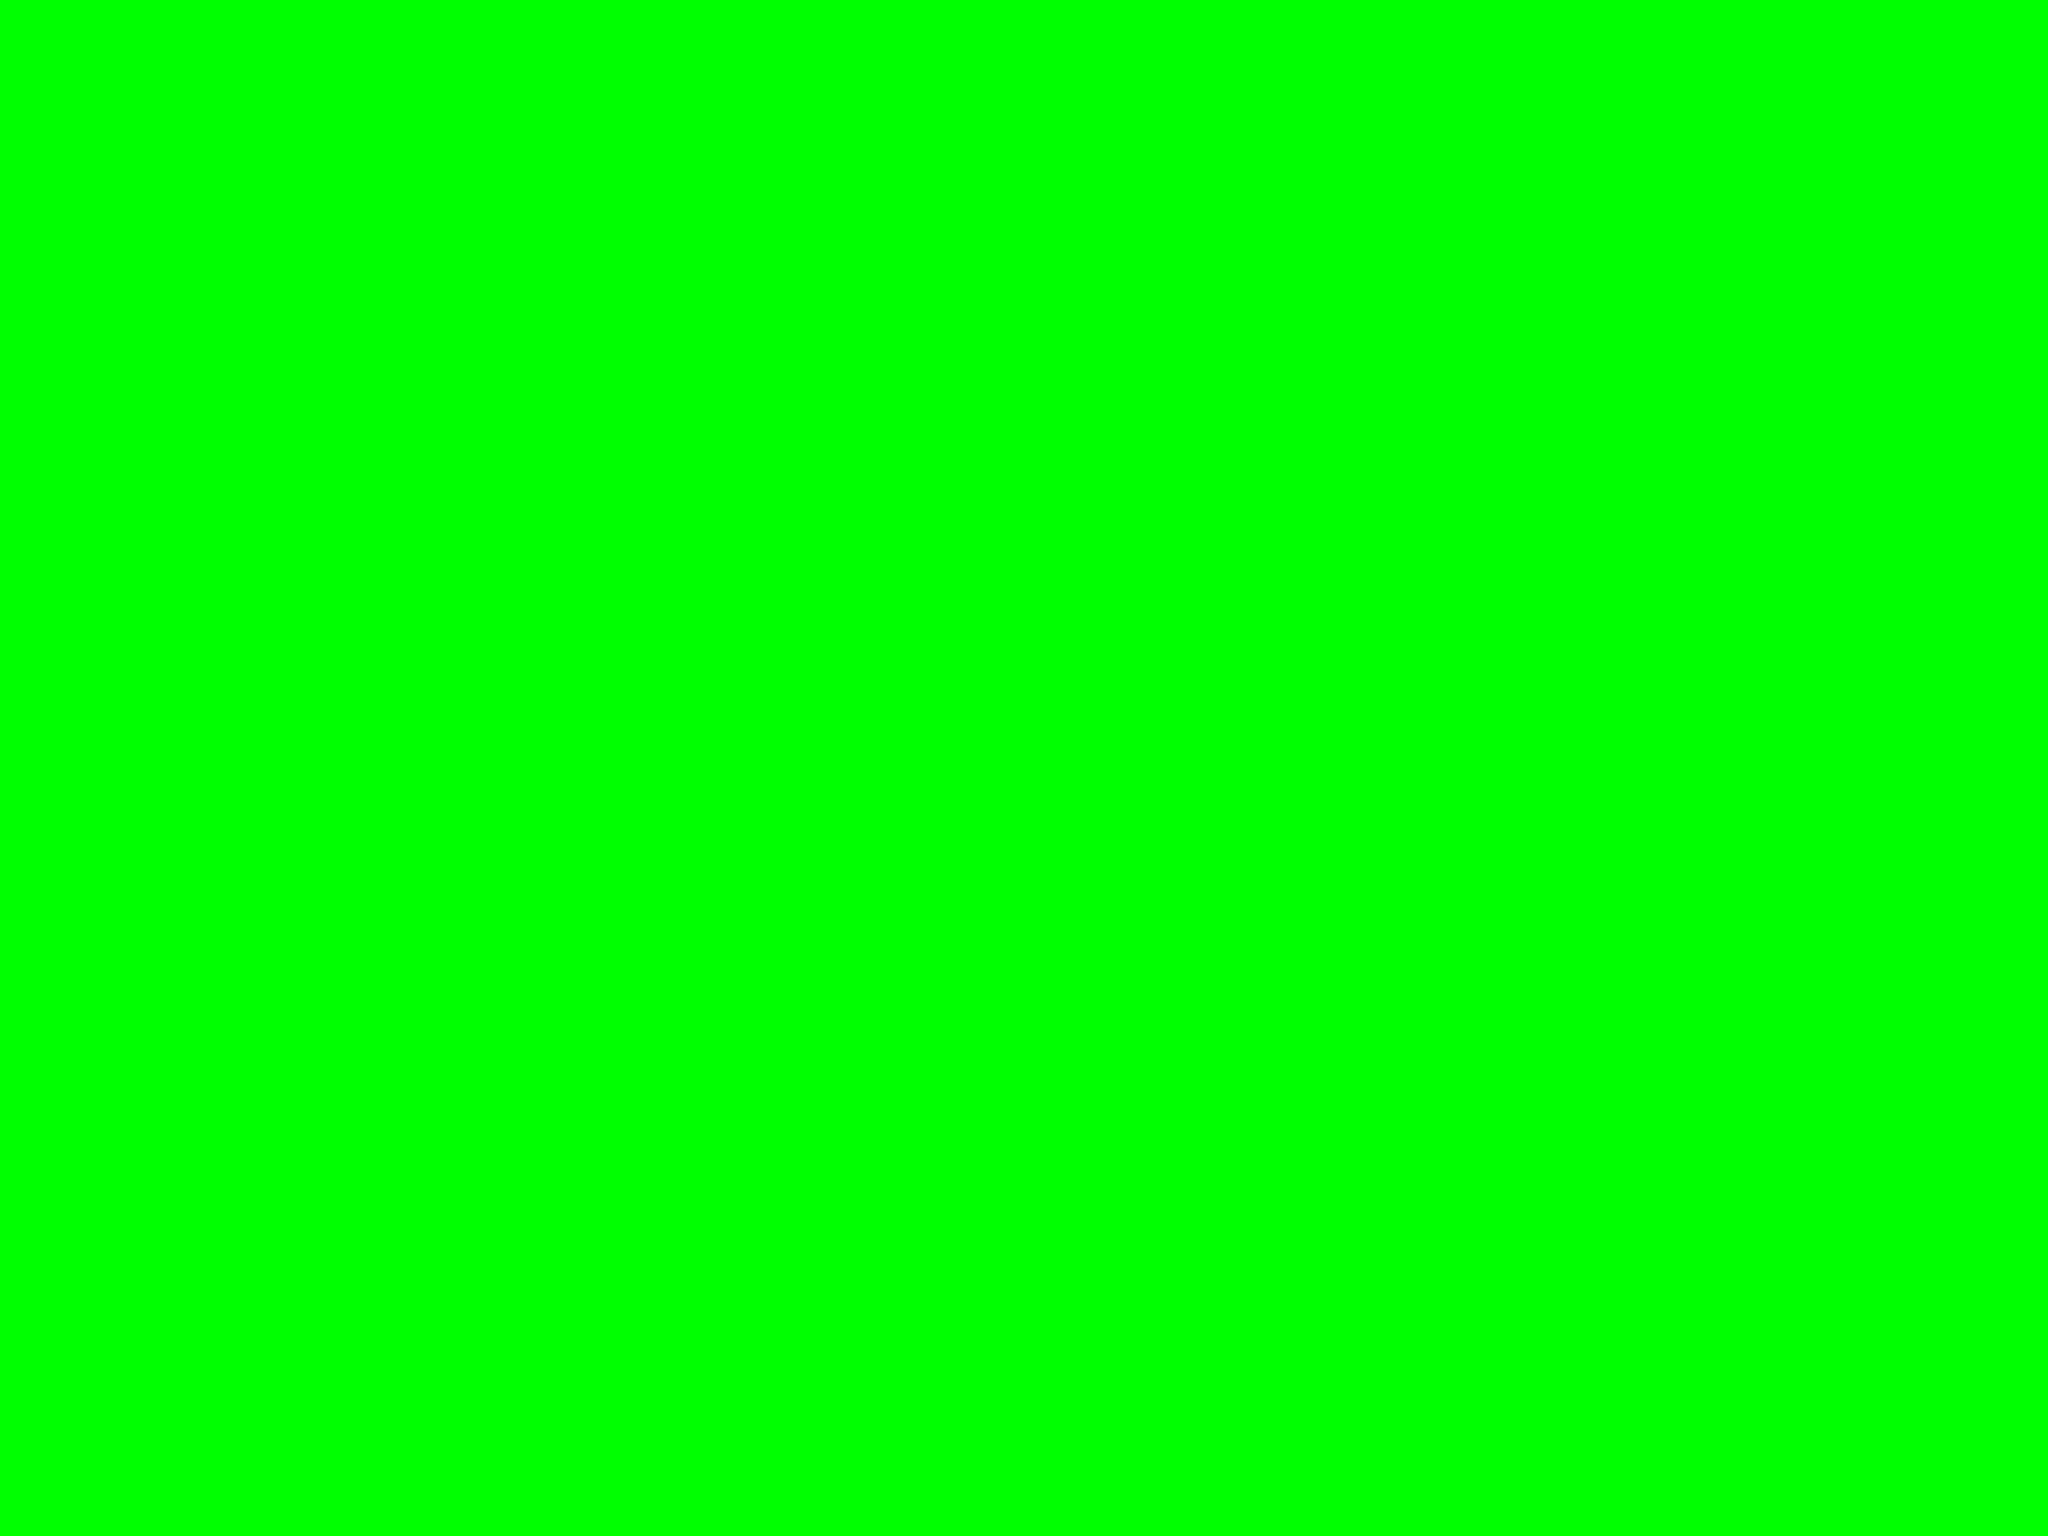 2048x1536 Green X11 Gui Green Solid Color Background